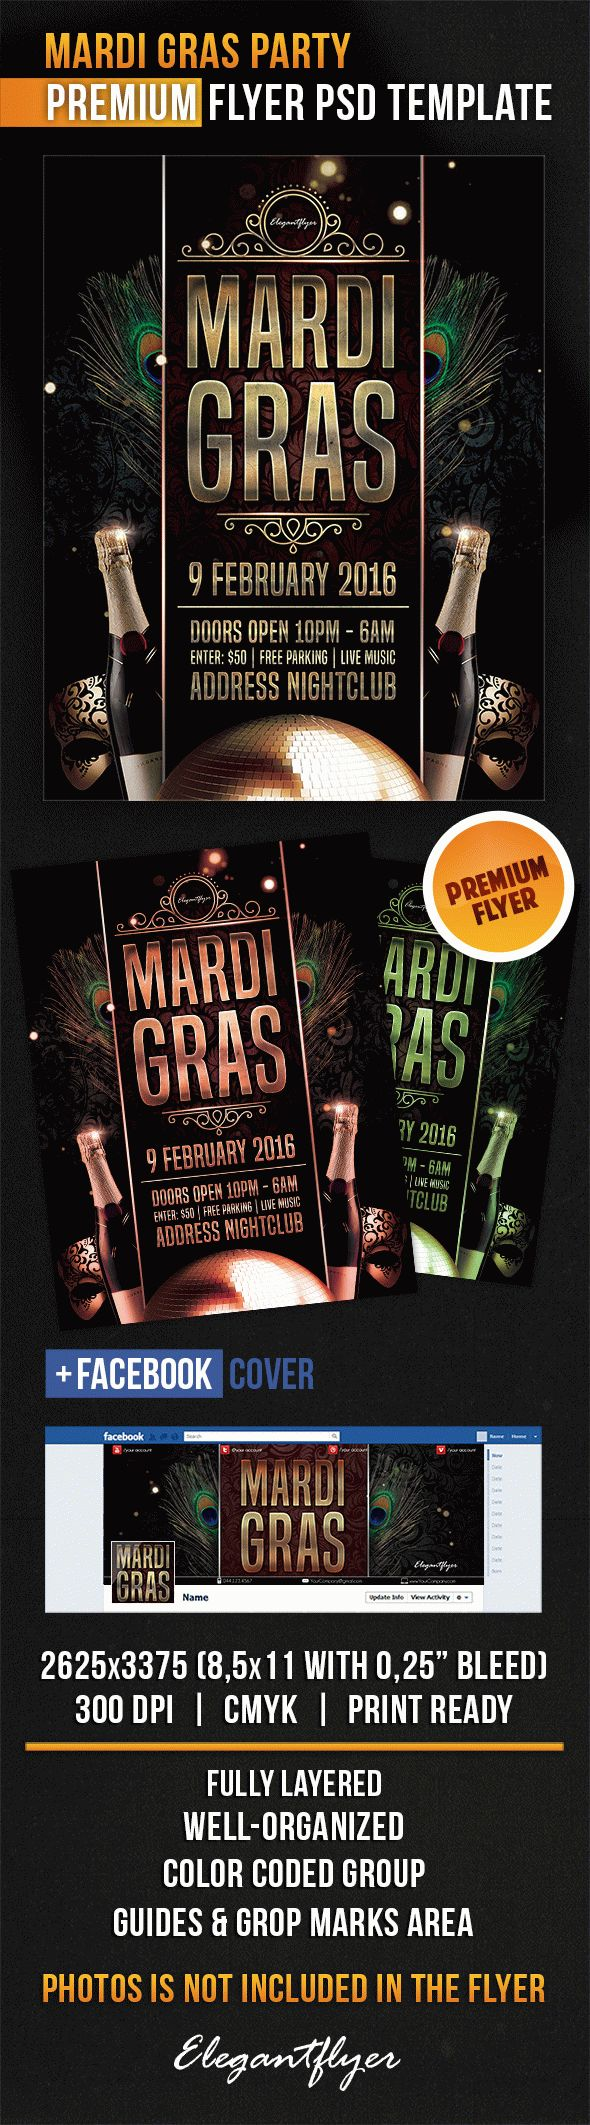 Flyer for Party City Mardi Gras